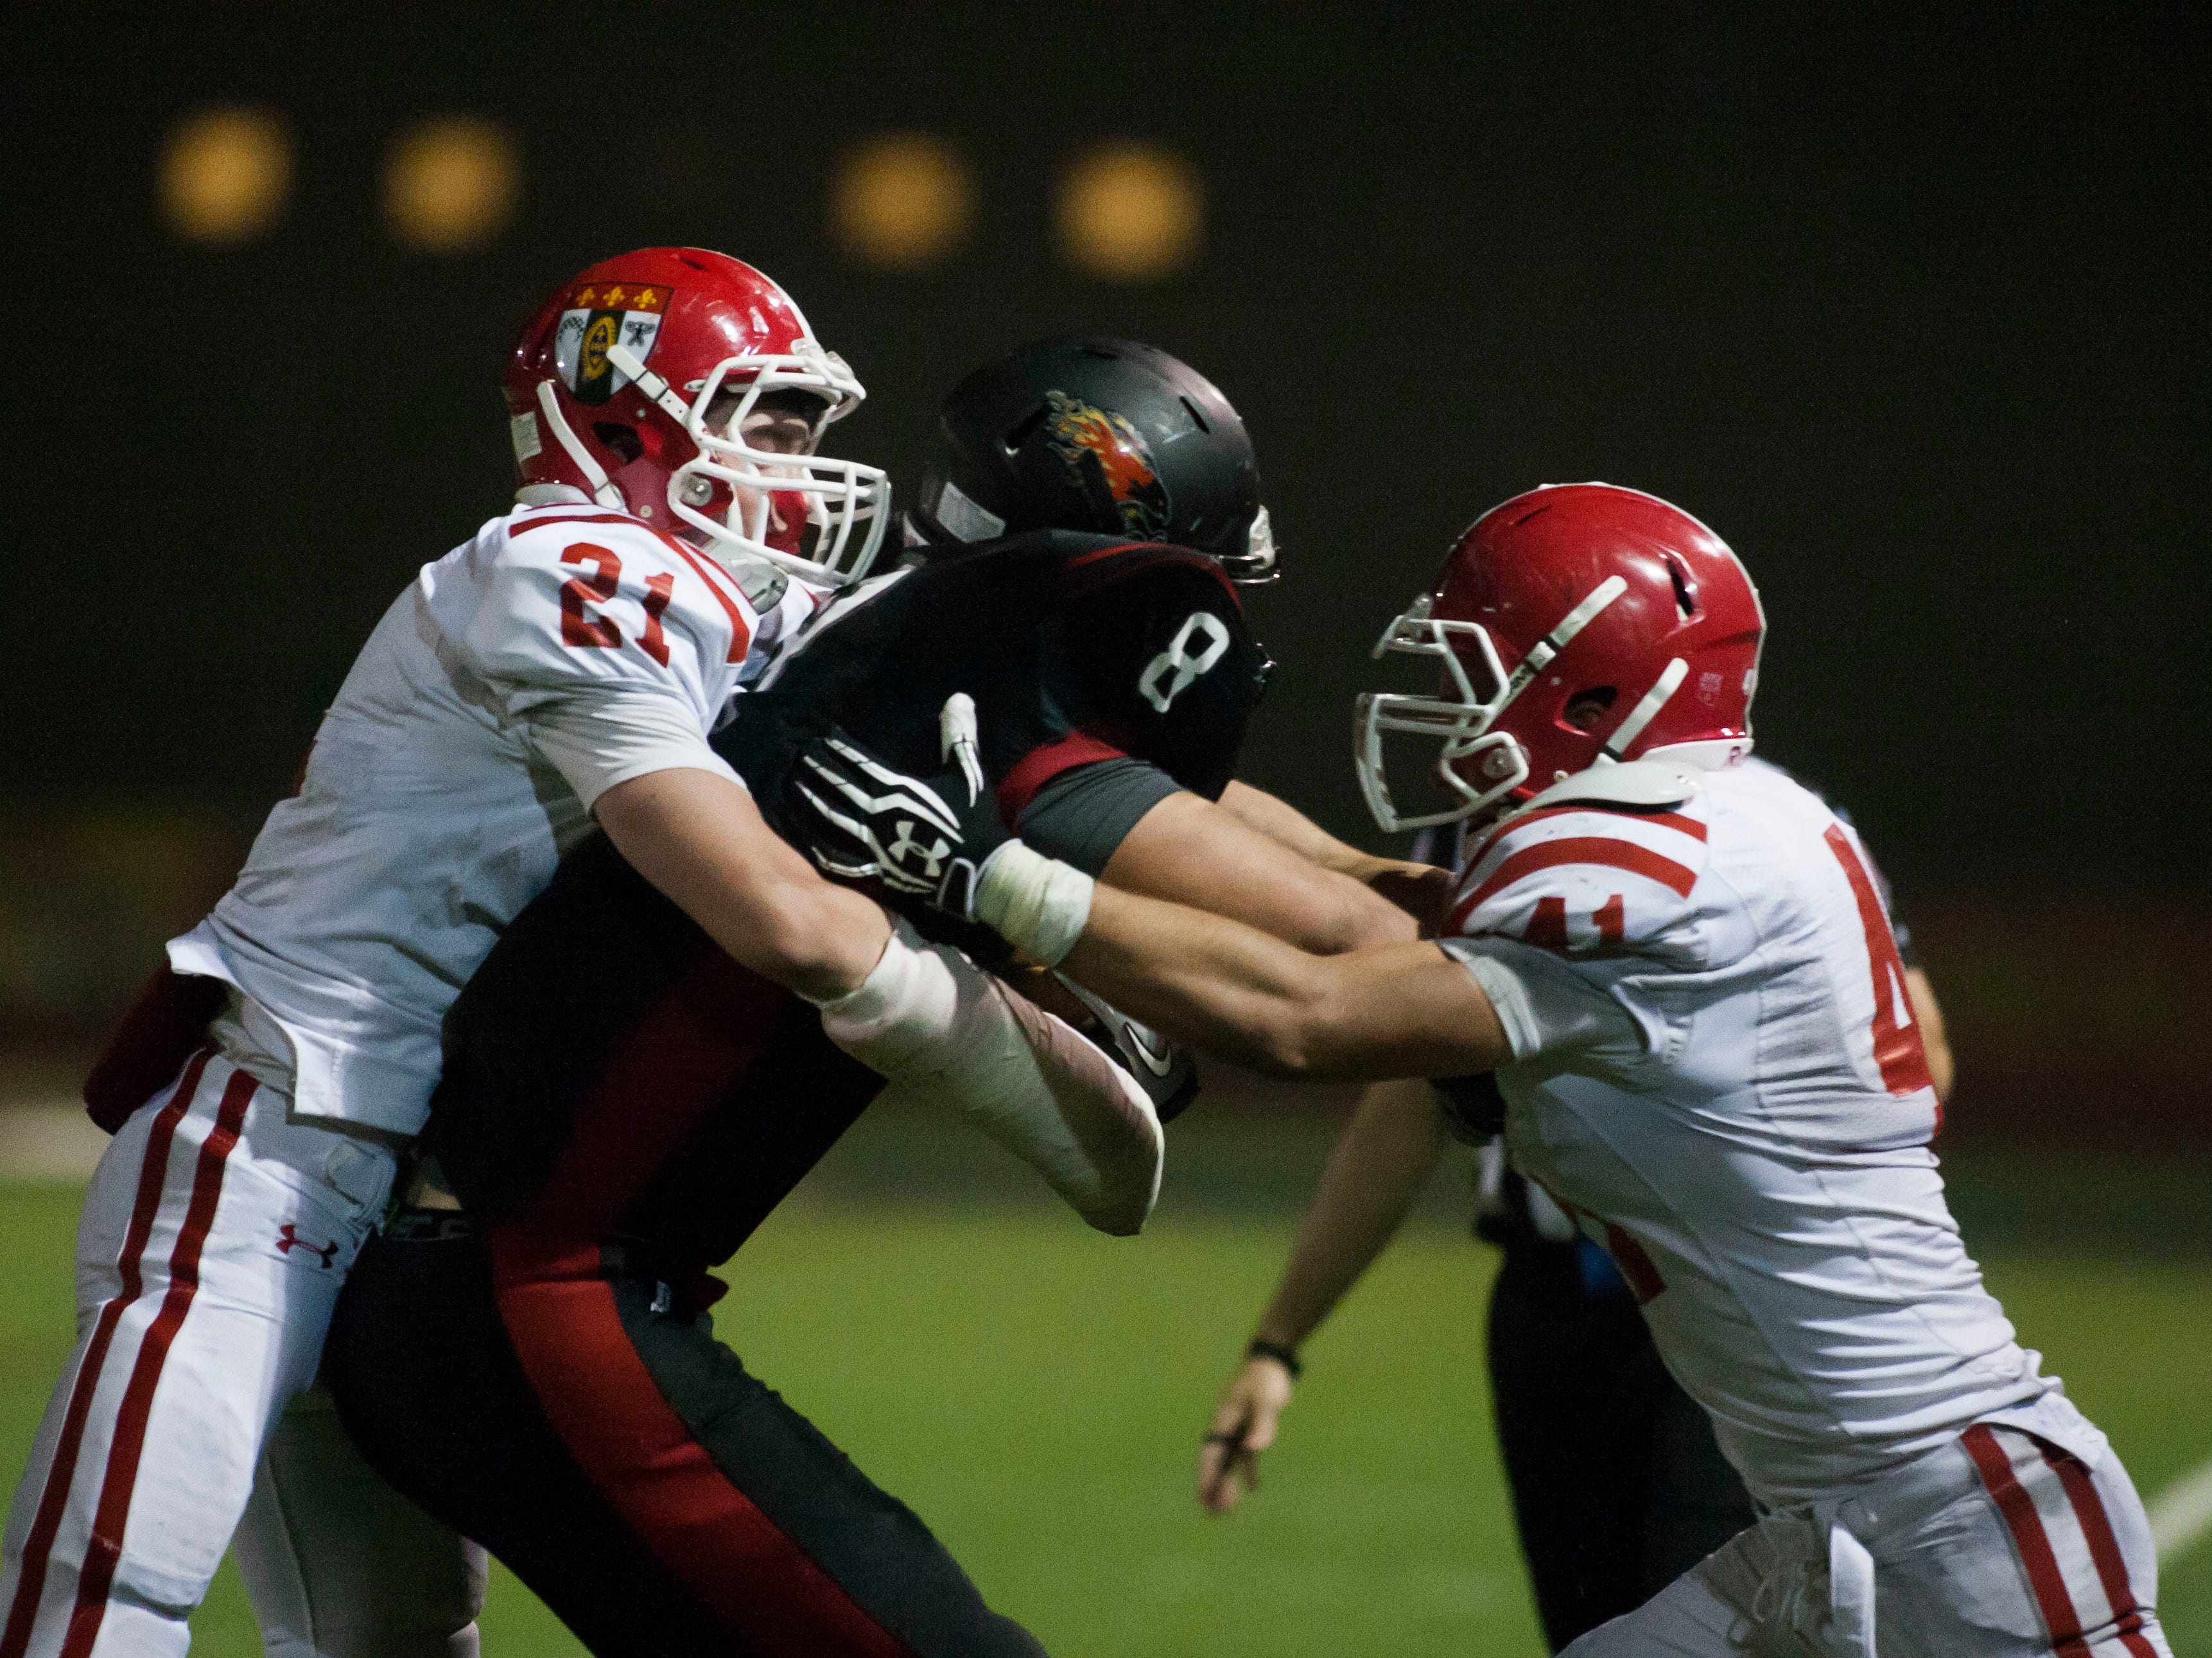 Brophy linebackers Owen Rogers (left) and Walker Adams attempt to tackle Chaparral tight end Trevor Wood during the Brophy College Prep and Chaparral football game at Chaparral High School on Thursday, October 17, 2013 in Scottsdale.